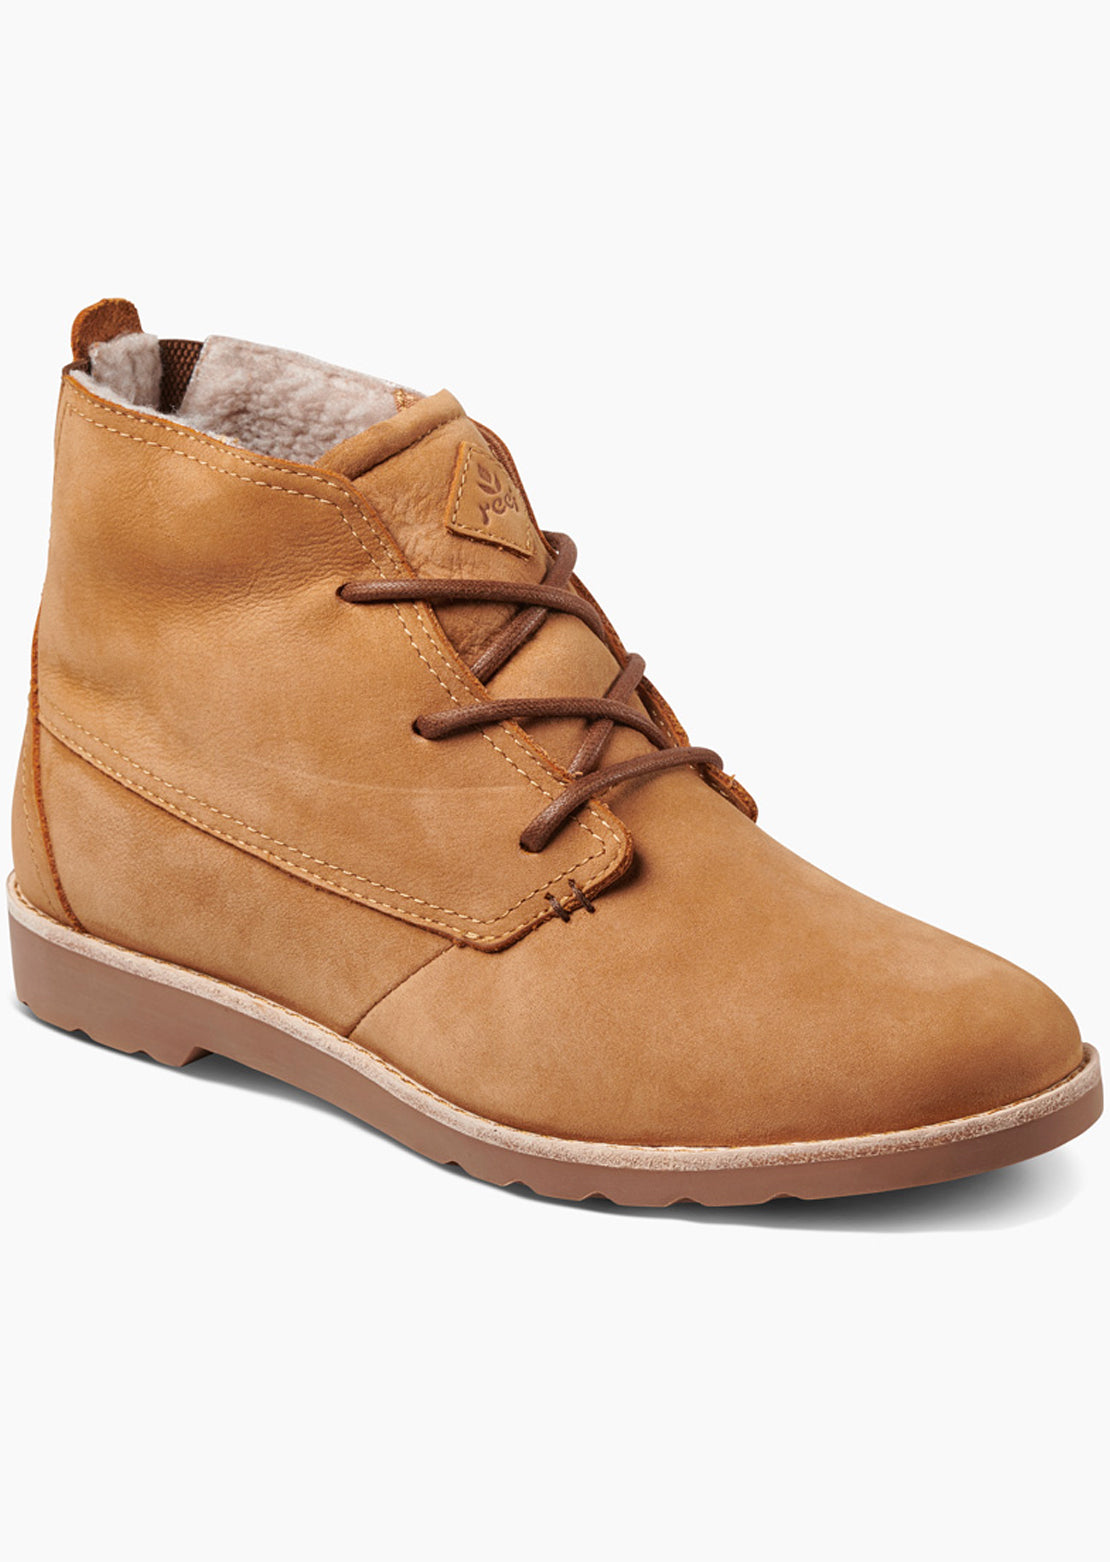 Reef Women's Voyage Desert WT Boots Wheat